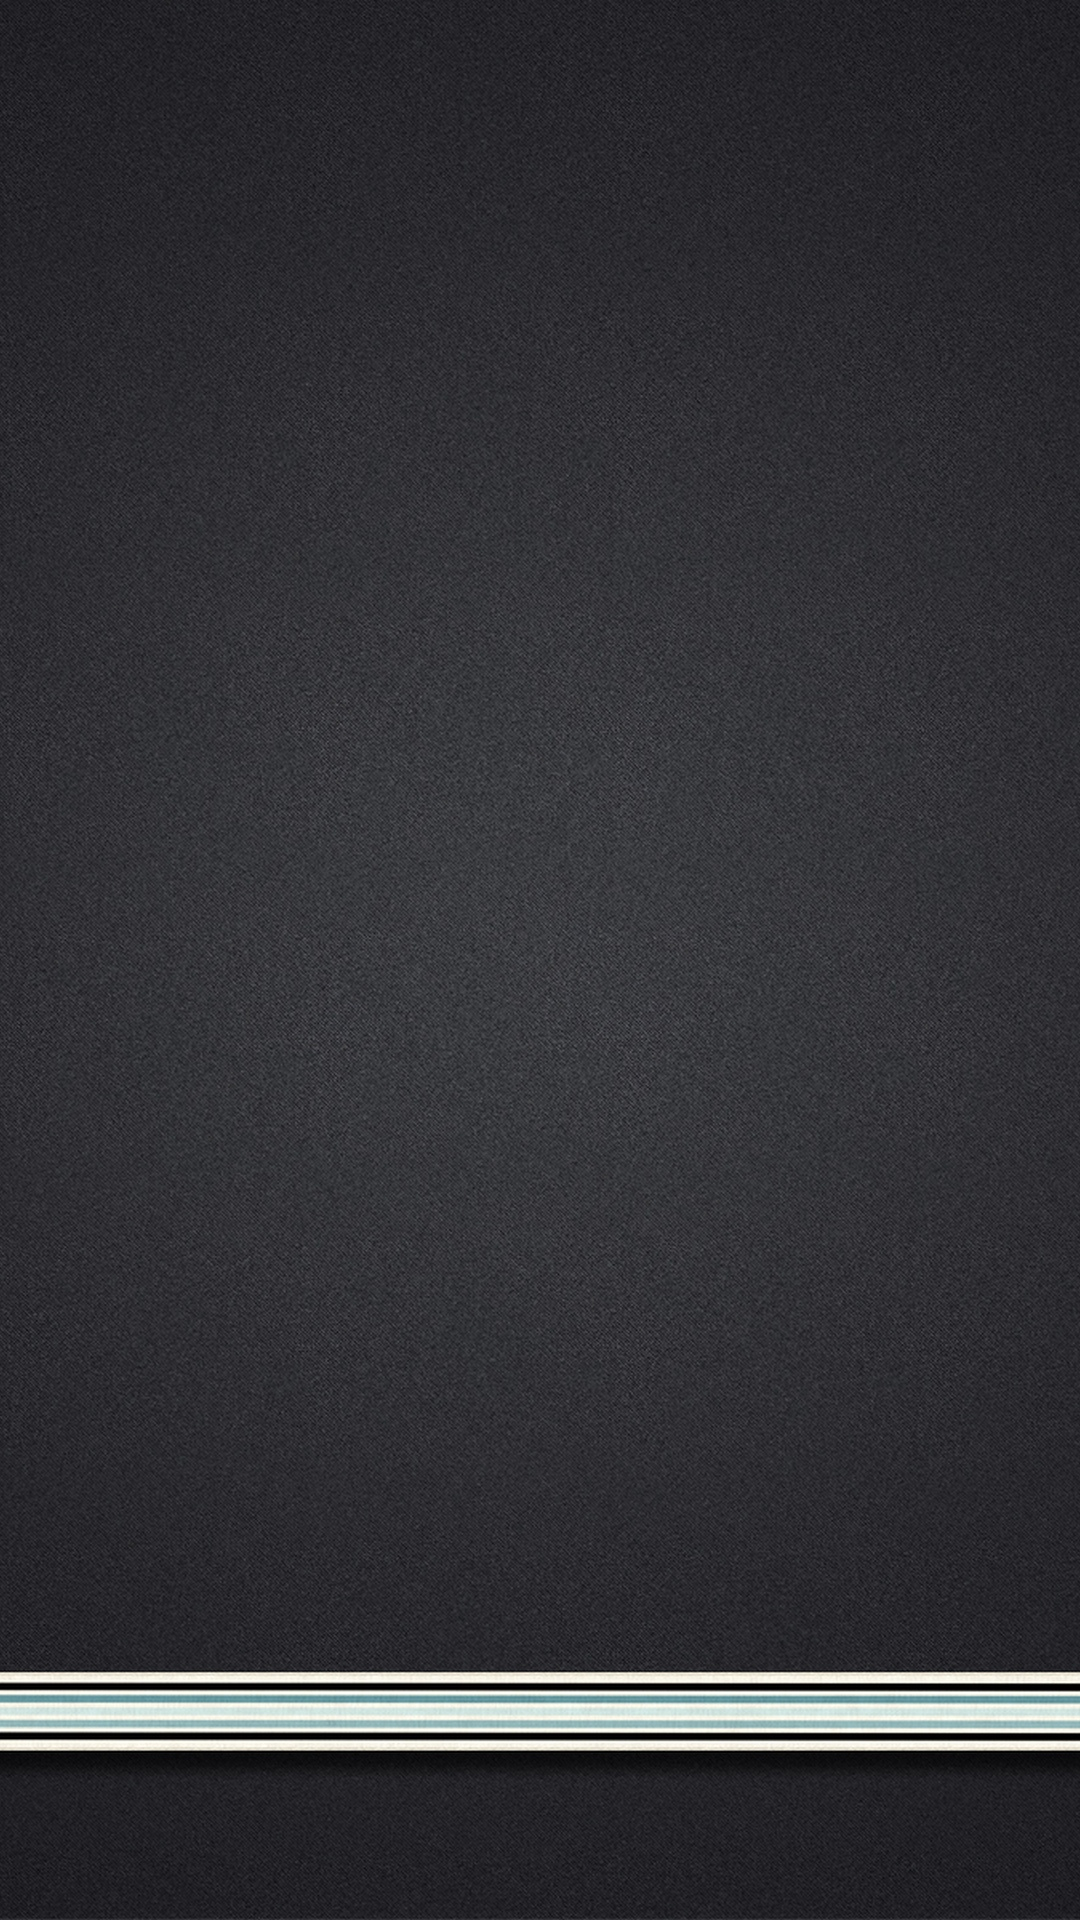 Wallpapers for Galaxy - Gray Simple Texture